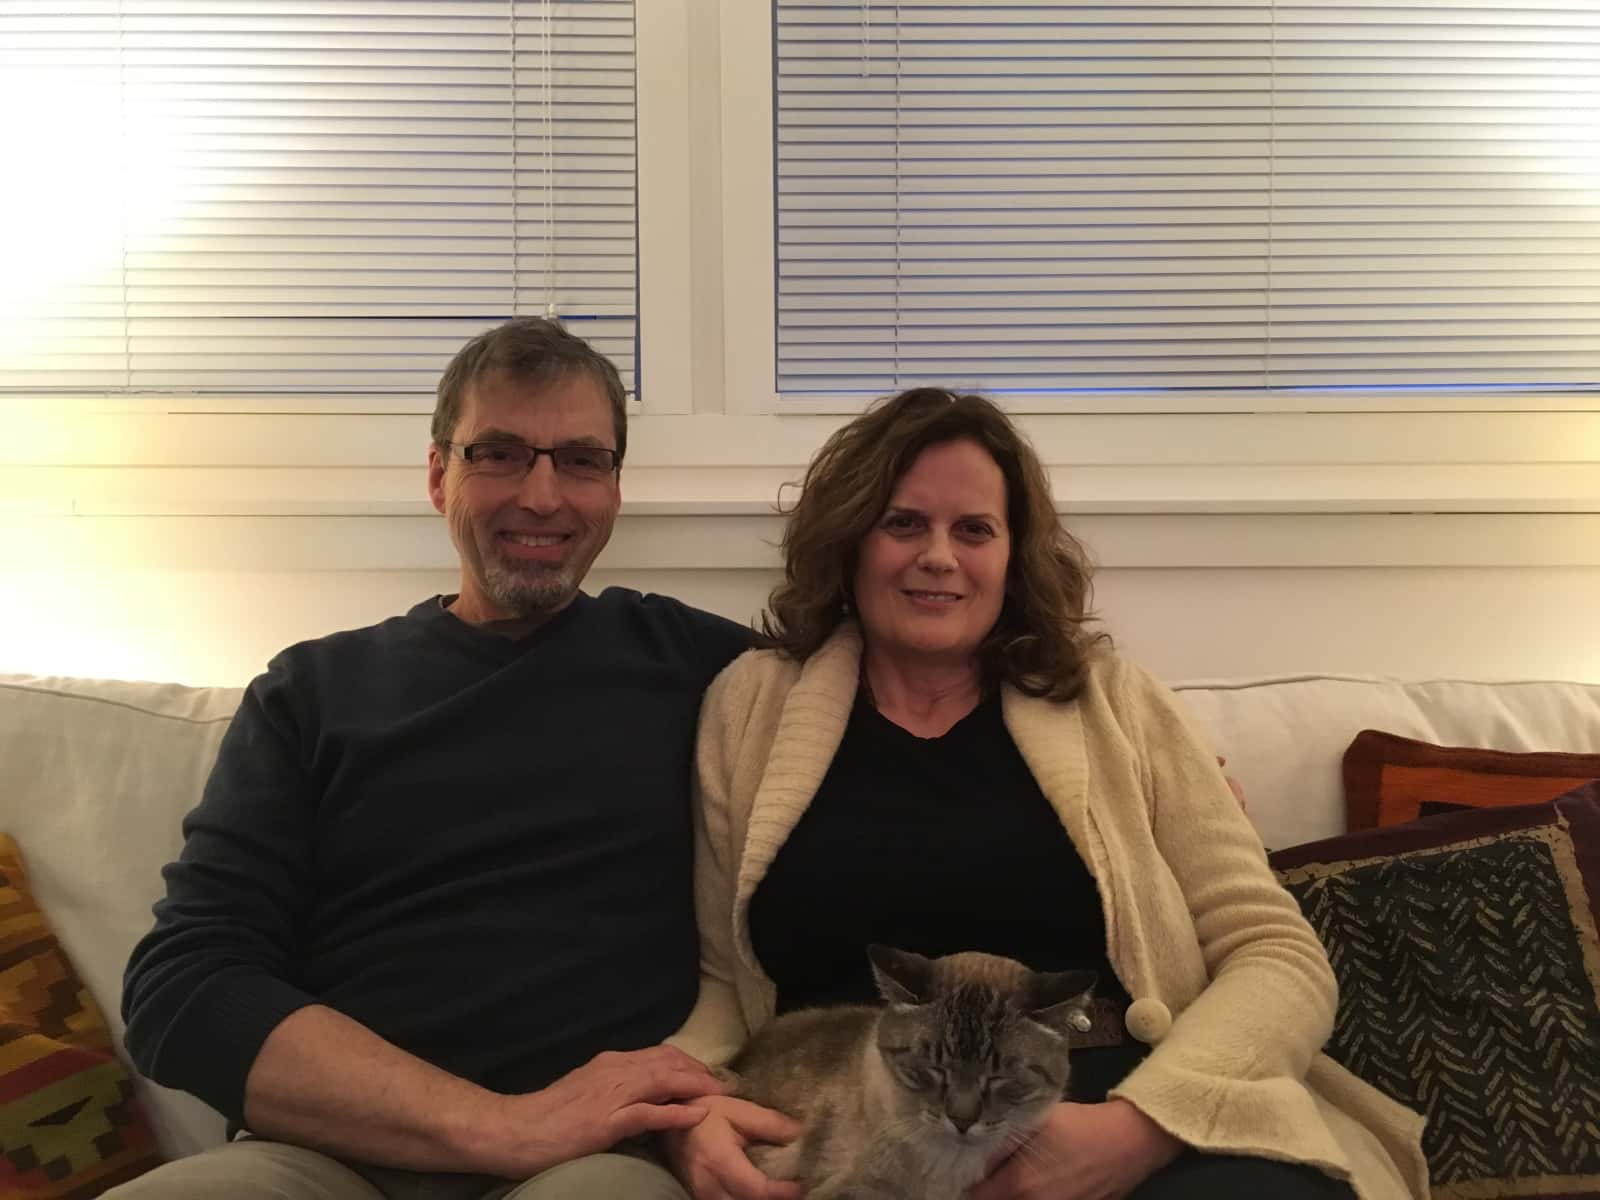 Tanis & Murray from Vancouver, British Columbia, Canada